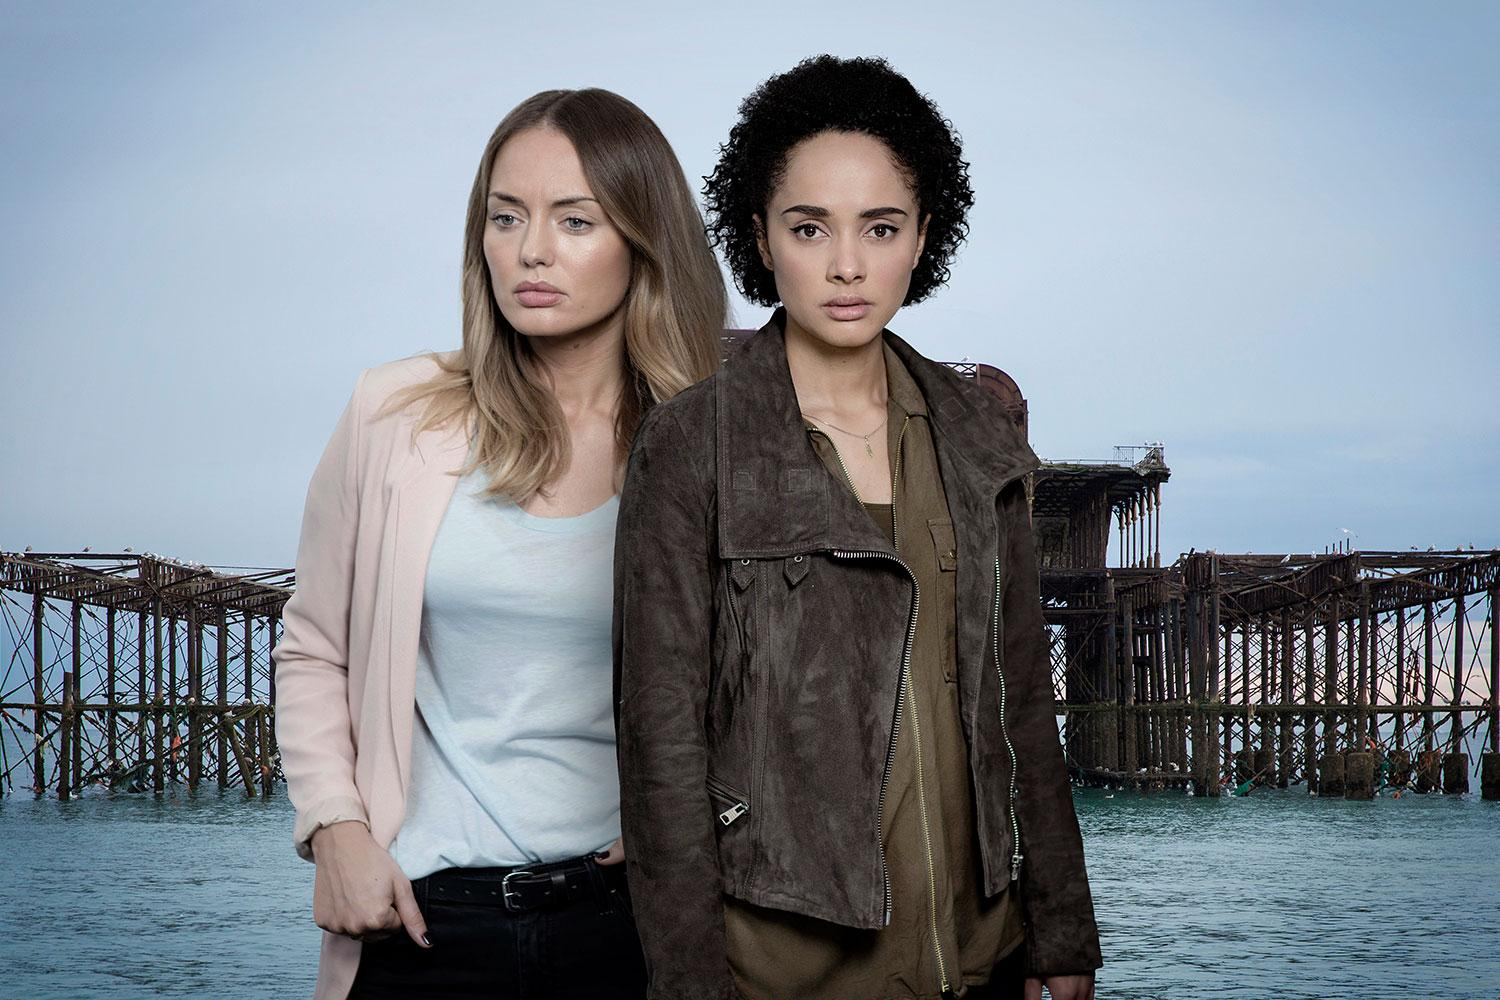 The Level ITV cast, locations, and 5 things you need to know about